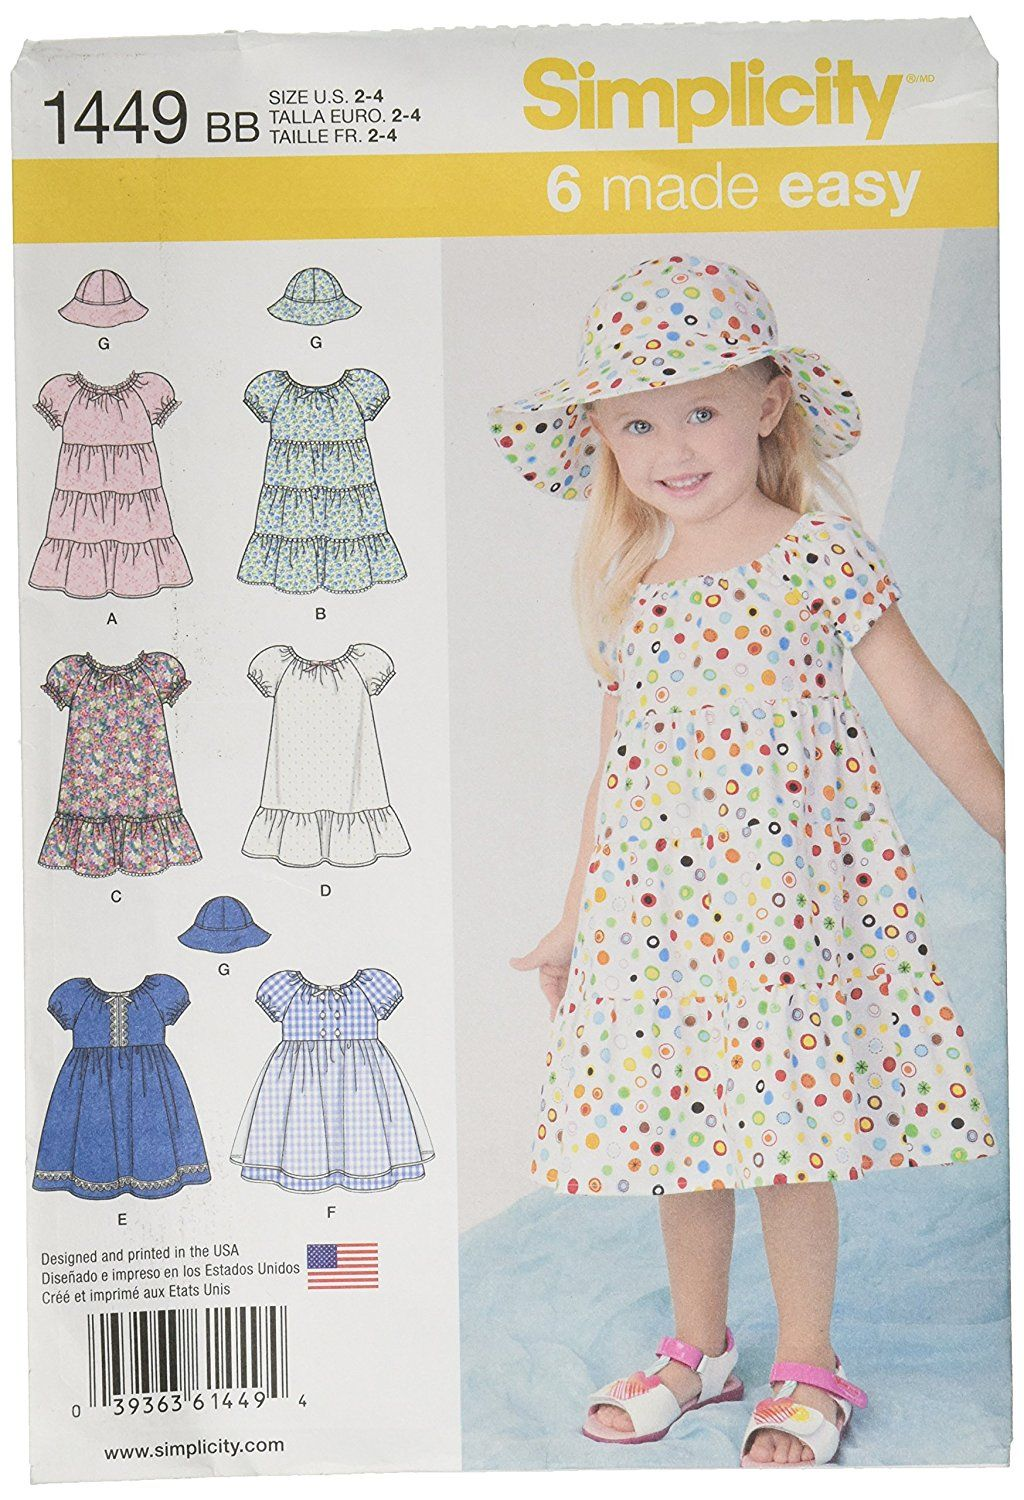 Amazon.com: Simplicity 6 Made Easy Pattern 1449 Toddler\'s Dresses ...